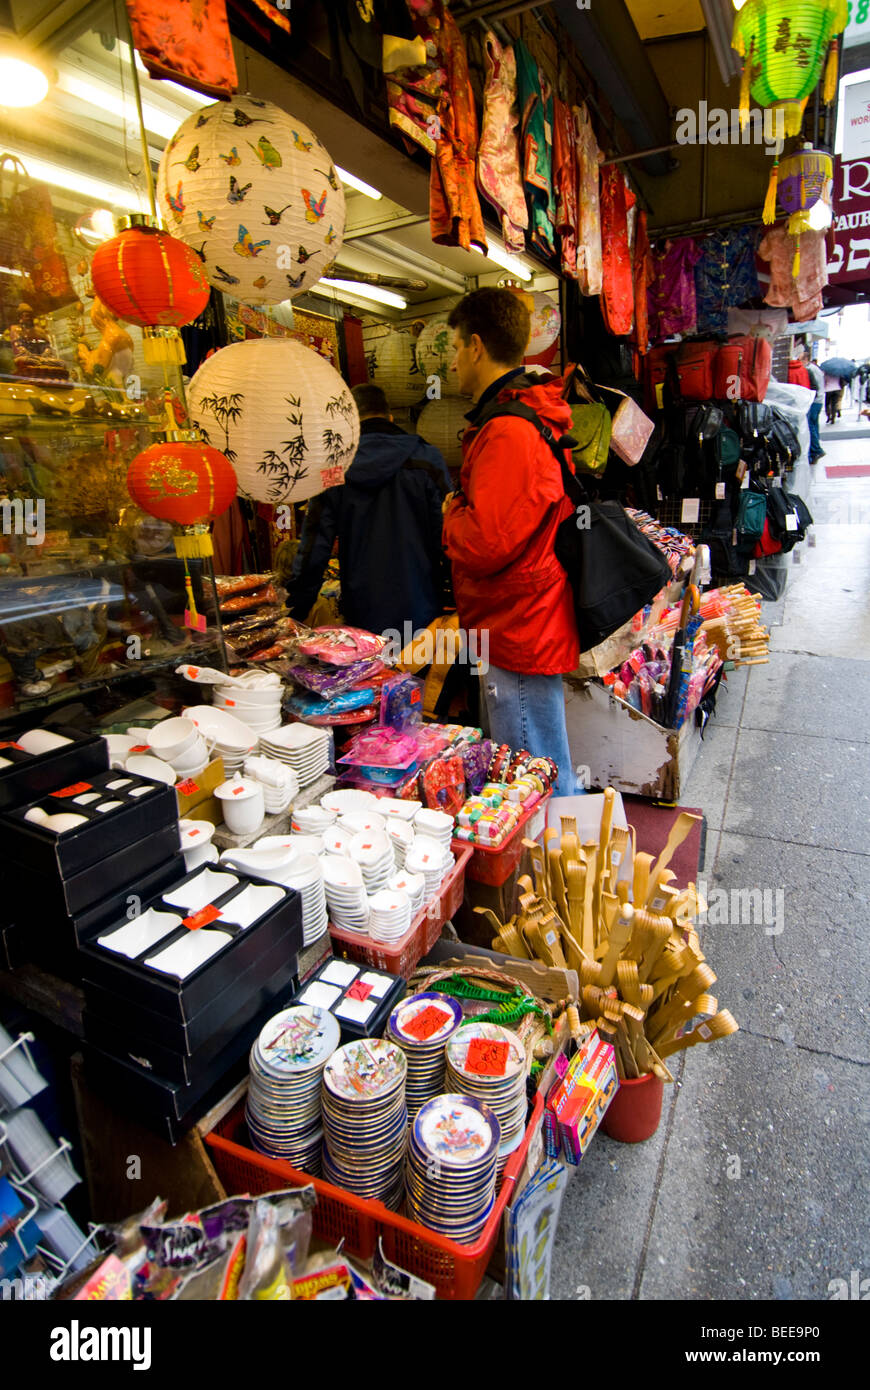 CA Chinatown San Francisco. Shopping on Grant Ave. Photo copyright Lee Foster. casanf77791 - Stock Image